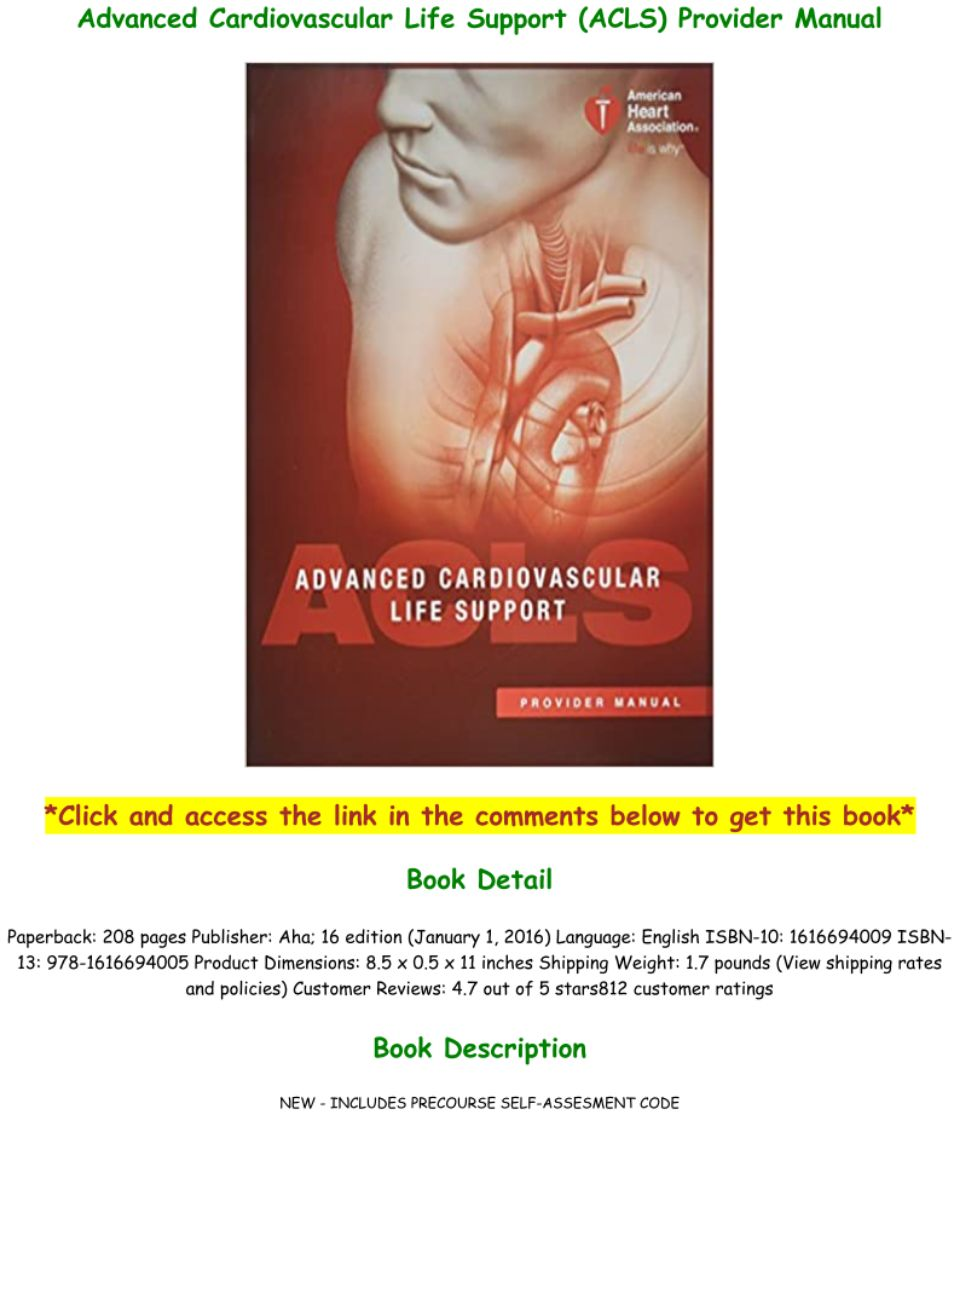 Acls Manual Pdf Free Download